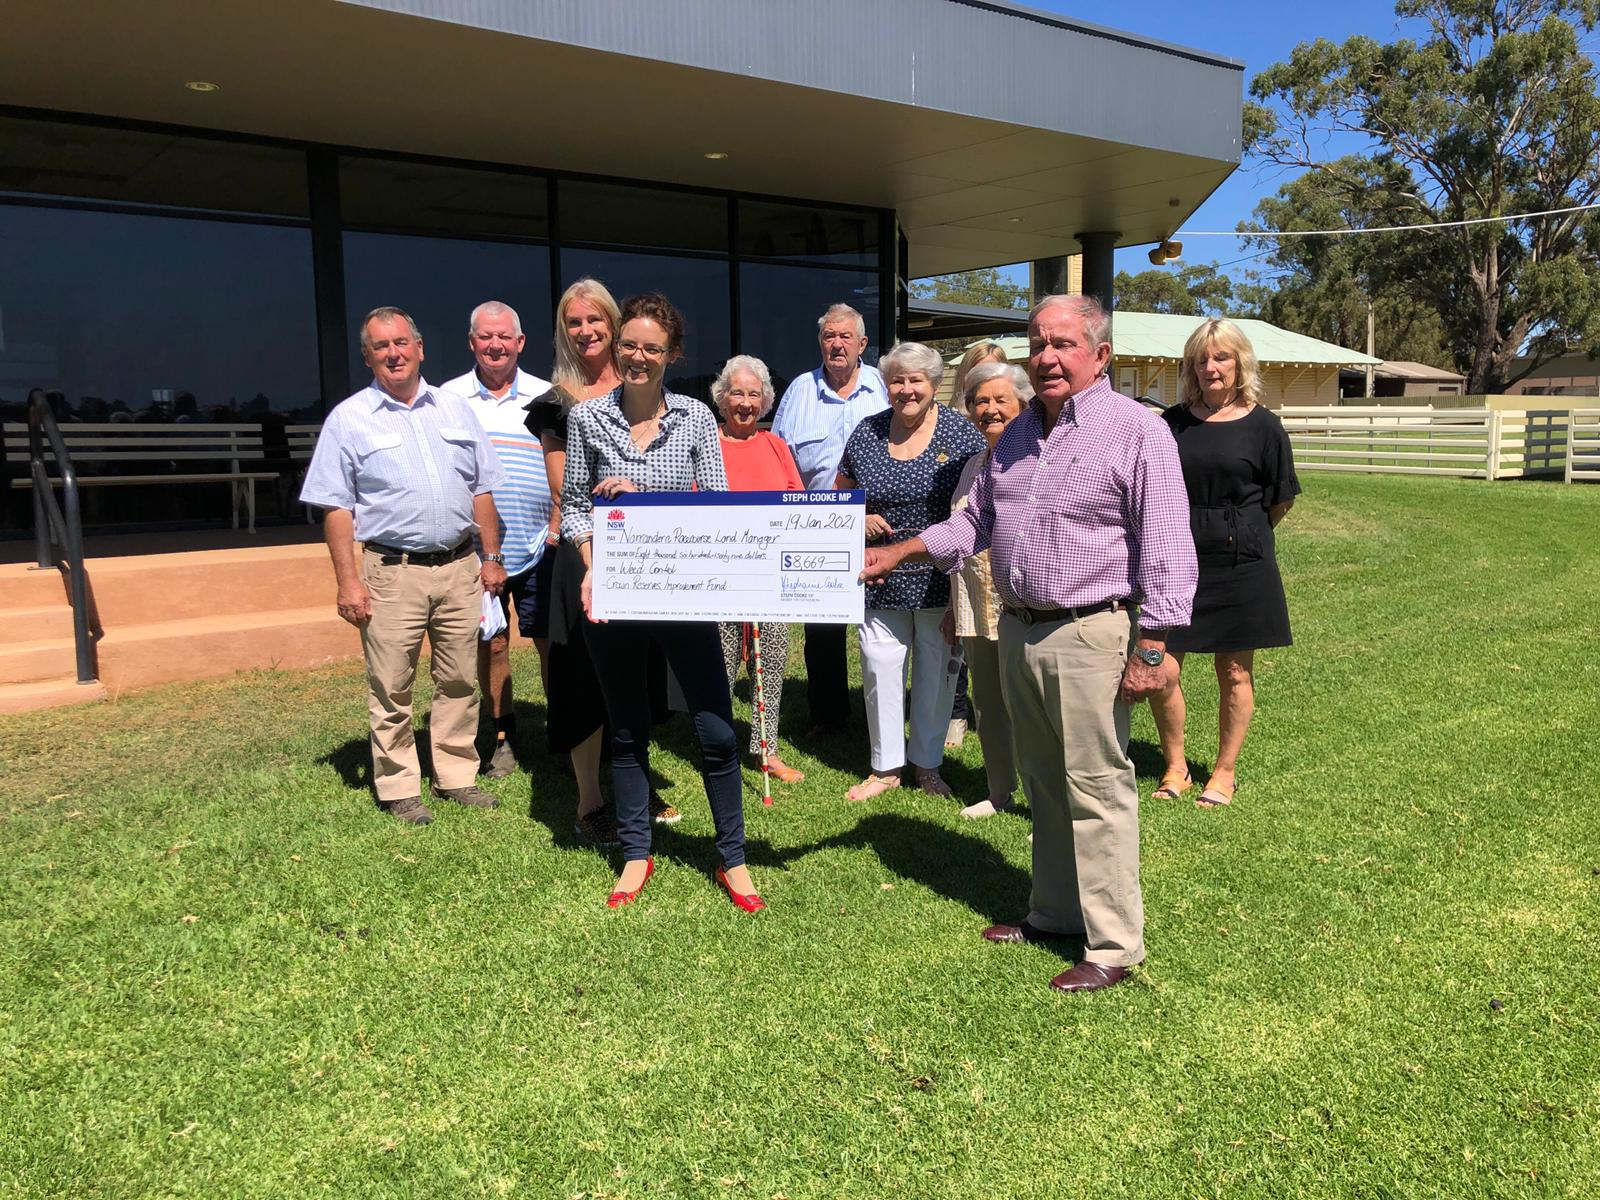 Steph Cooke presents a cheque to a group of people.